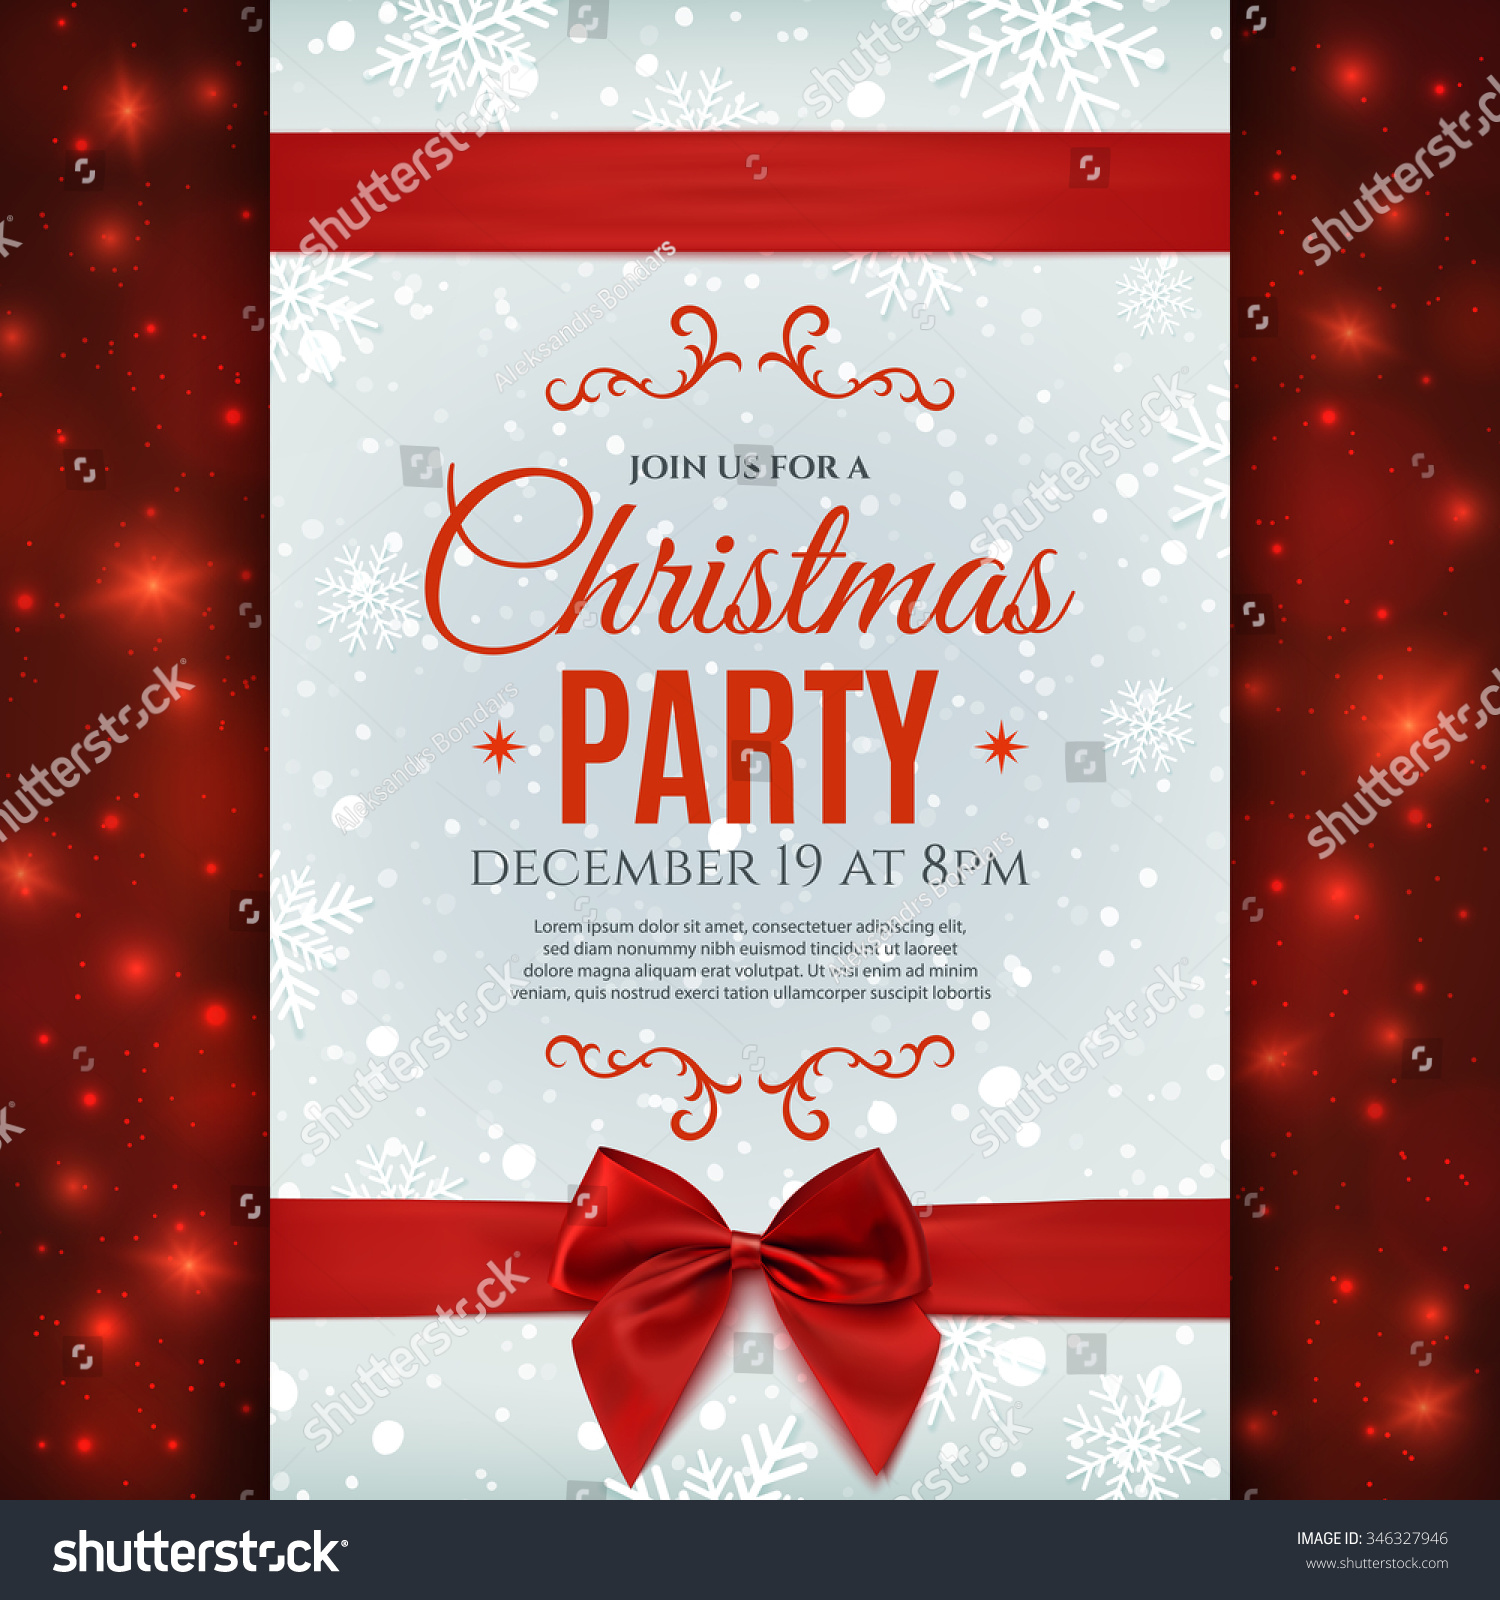 christmas party poster template snow snowflakes stock vector christmas party poster template snow and snowflakes christmas background red ribbon and bow